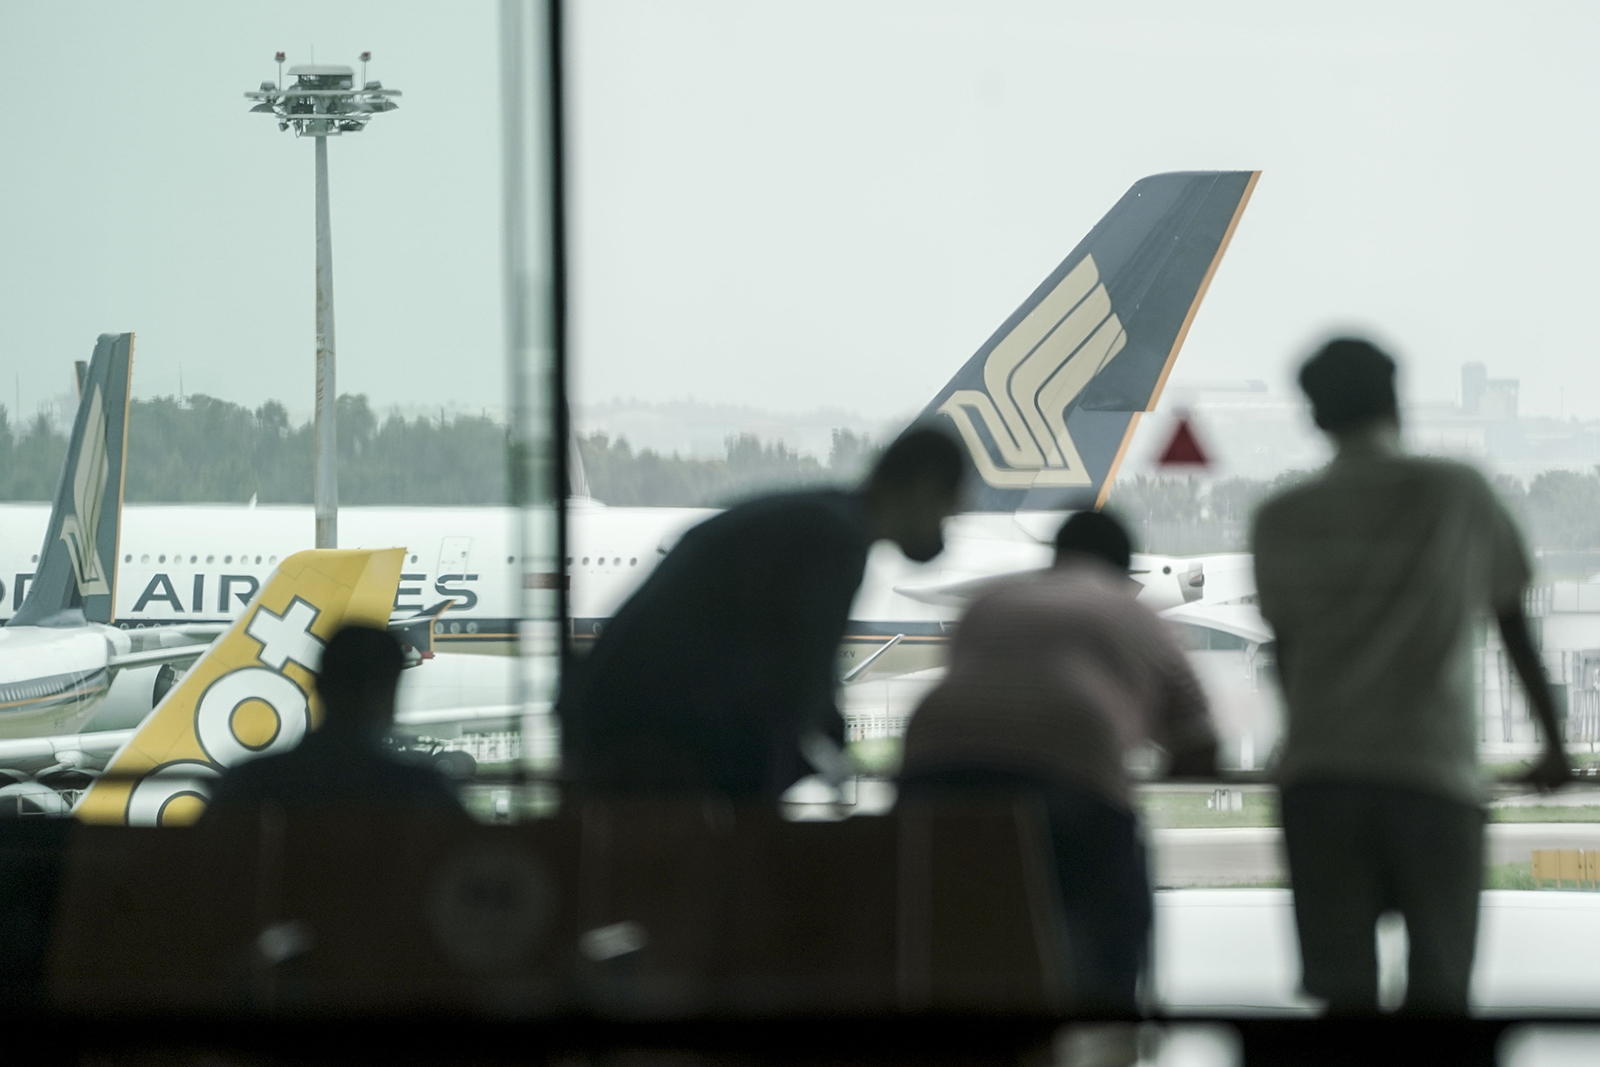 Three men wait to board a plan at the Changi Airport in Singapore on January 13.